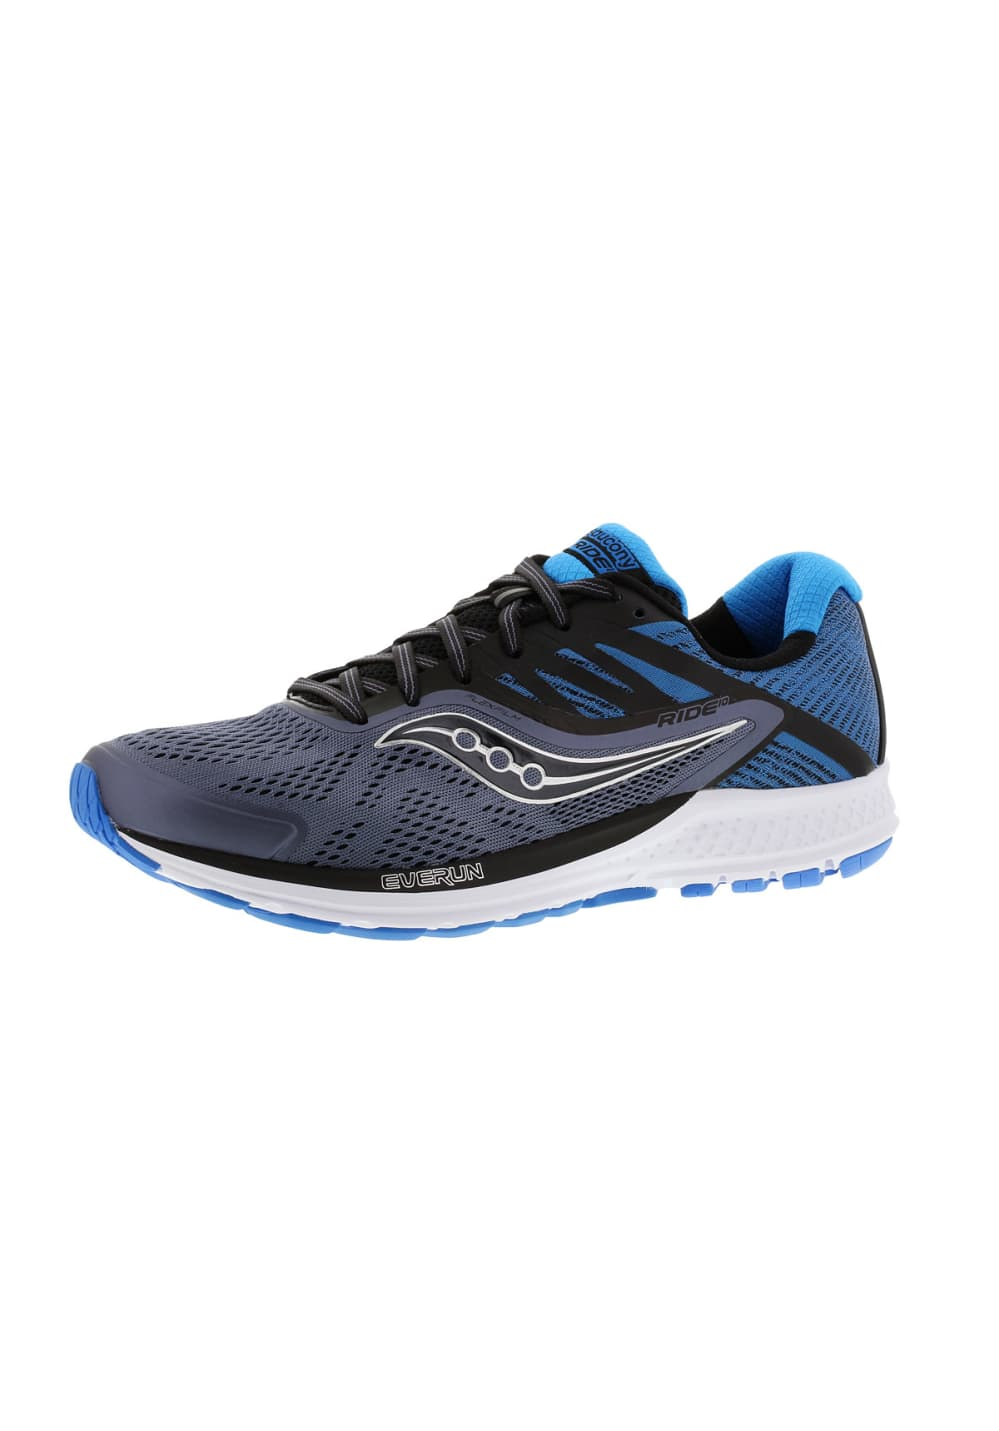 8a5a5d1a Saucony Ride 10 - Running shoes for Men - Grey